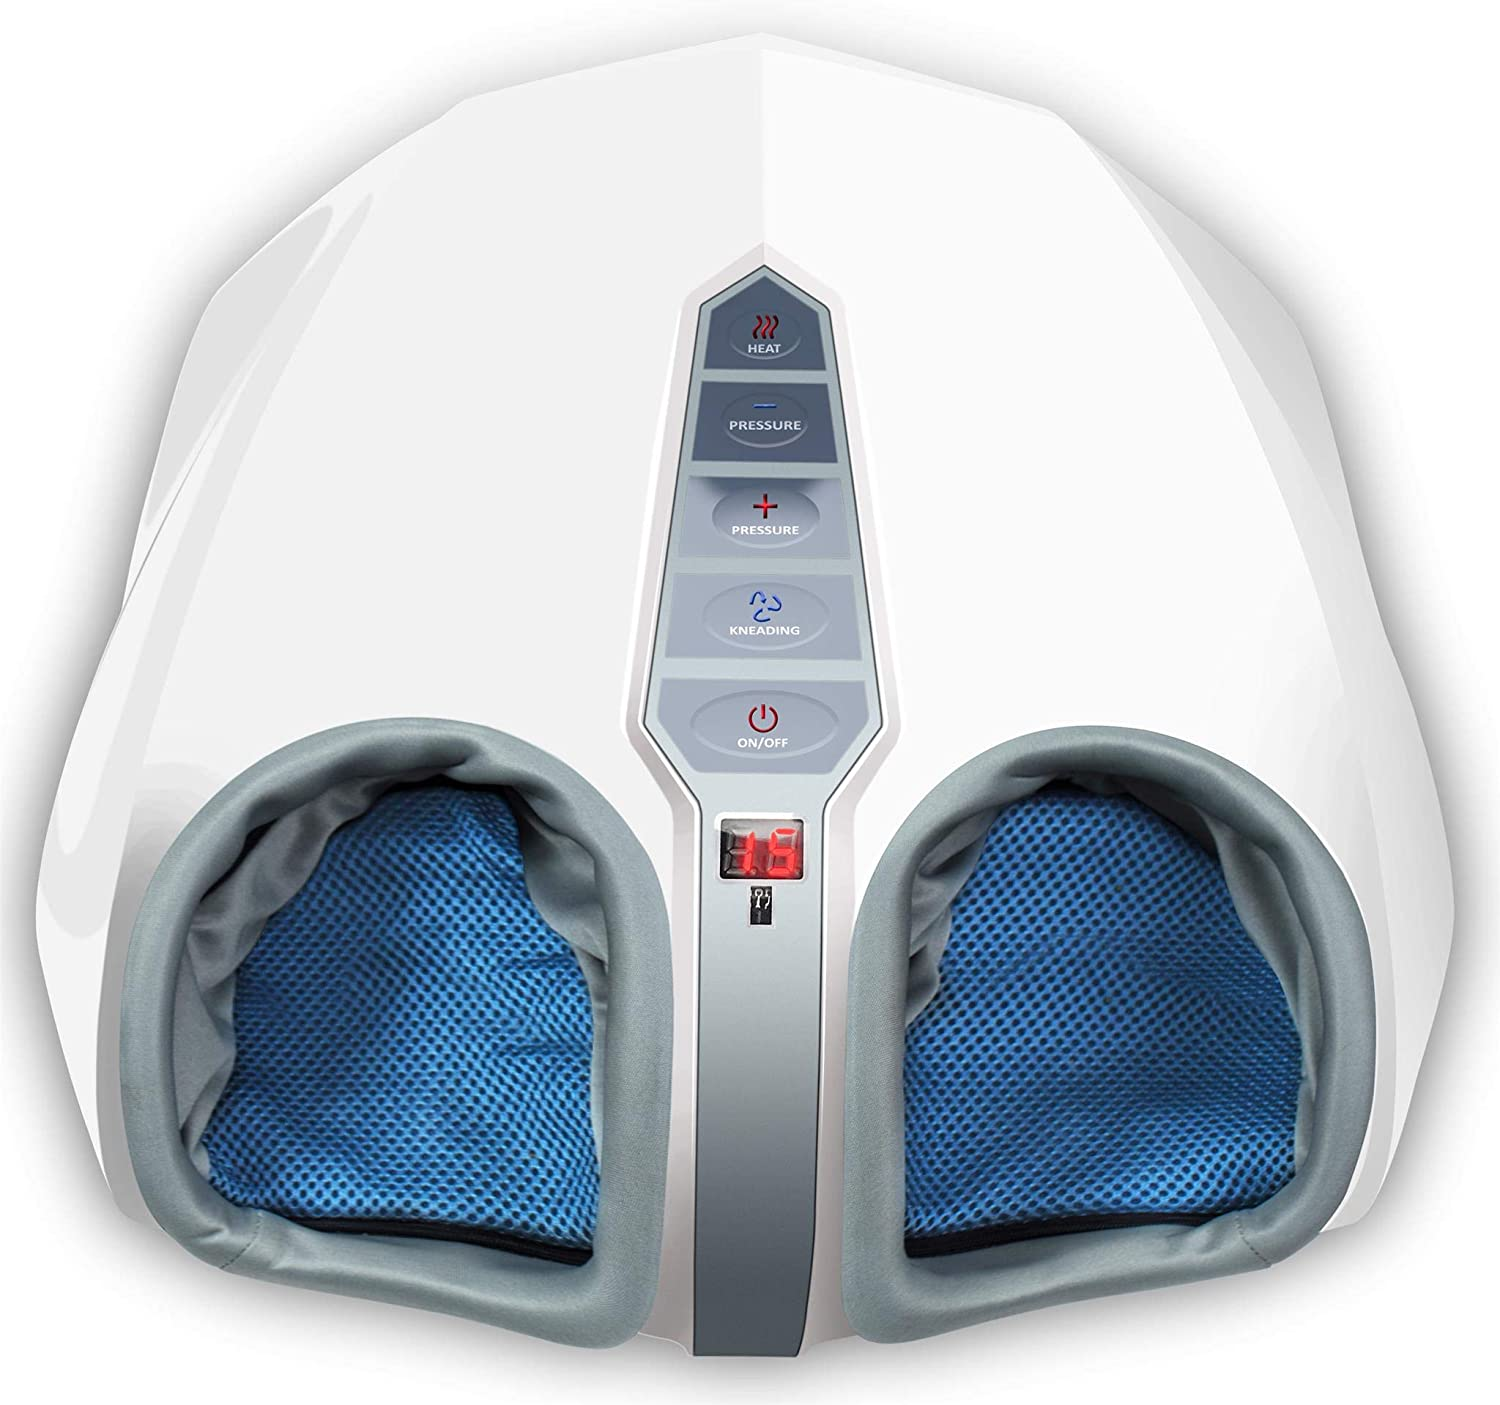 Miko Shiatsu Foot Massager Machine with Heat, Air Compression, Kneading Massage, and Rolling Therapy - Relieve Plantar Fasciitis, Feet Pain, Neuropathy, Tired Muscles and Improve Circulation